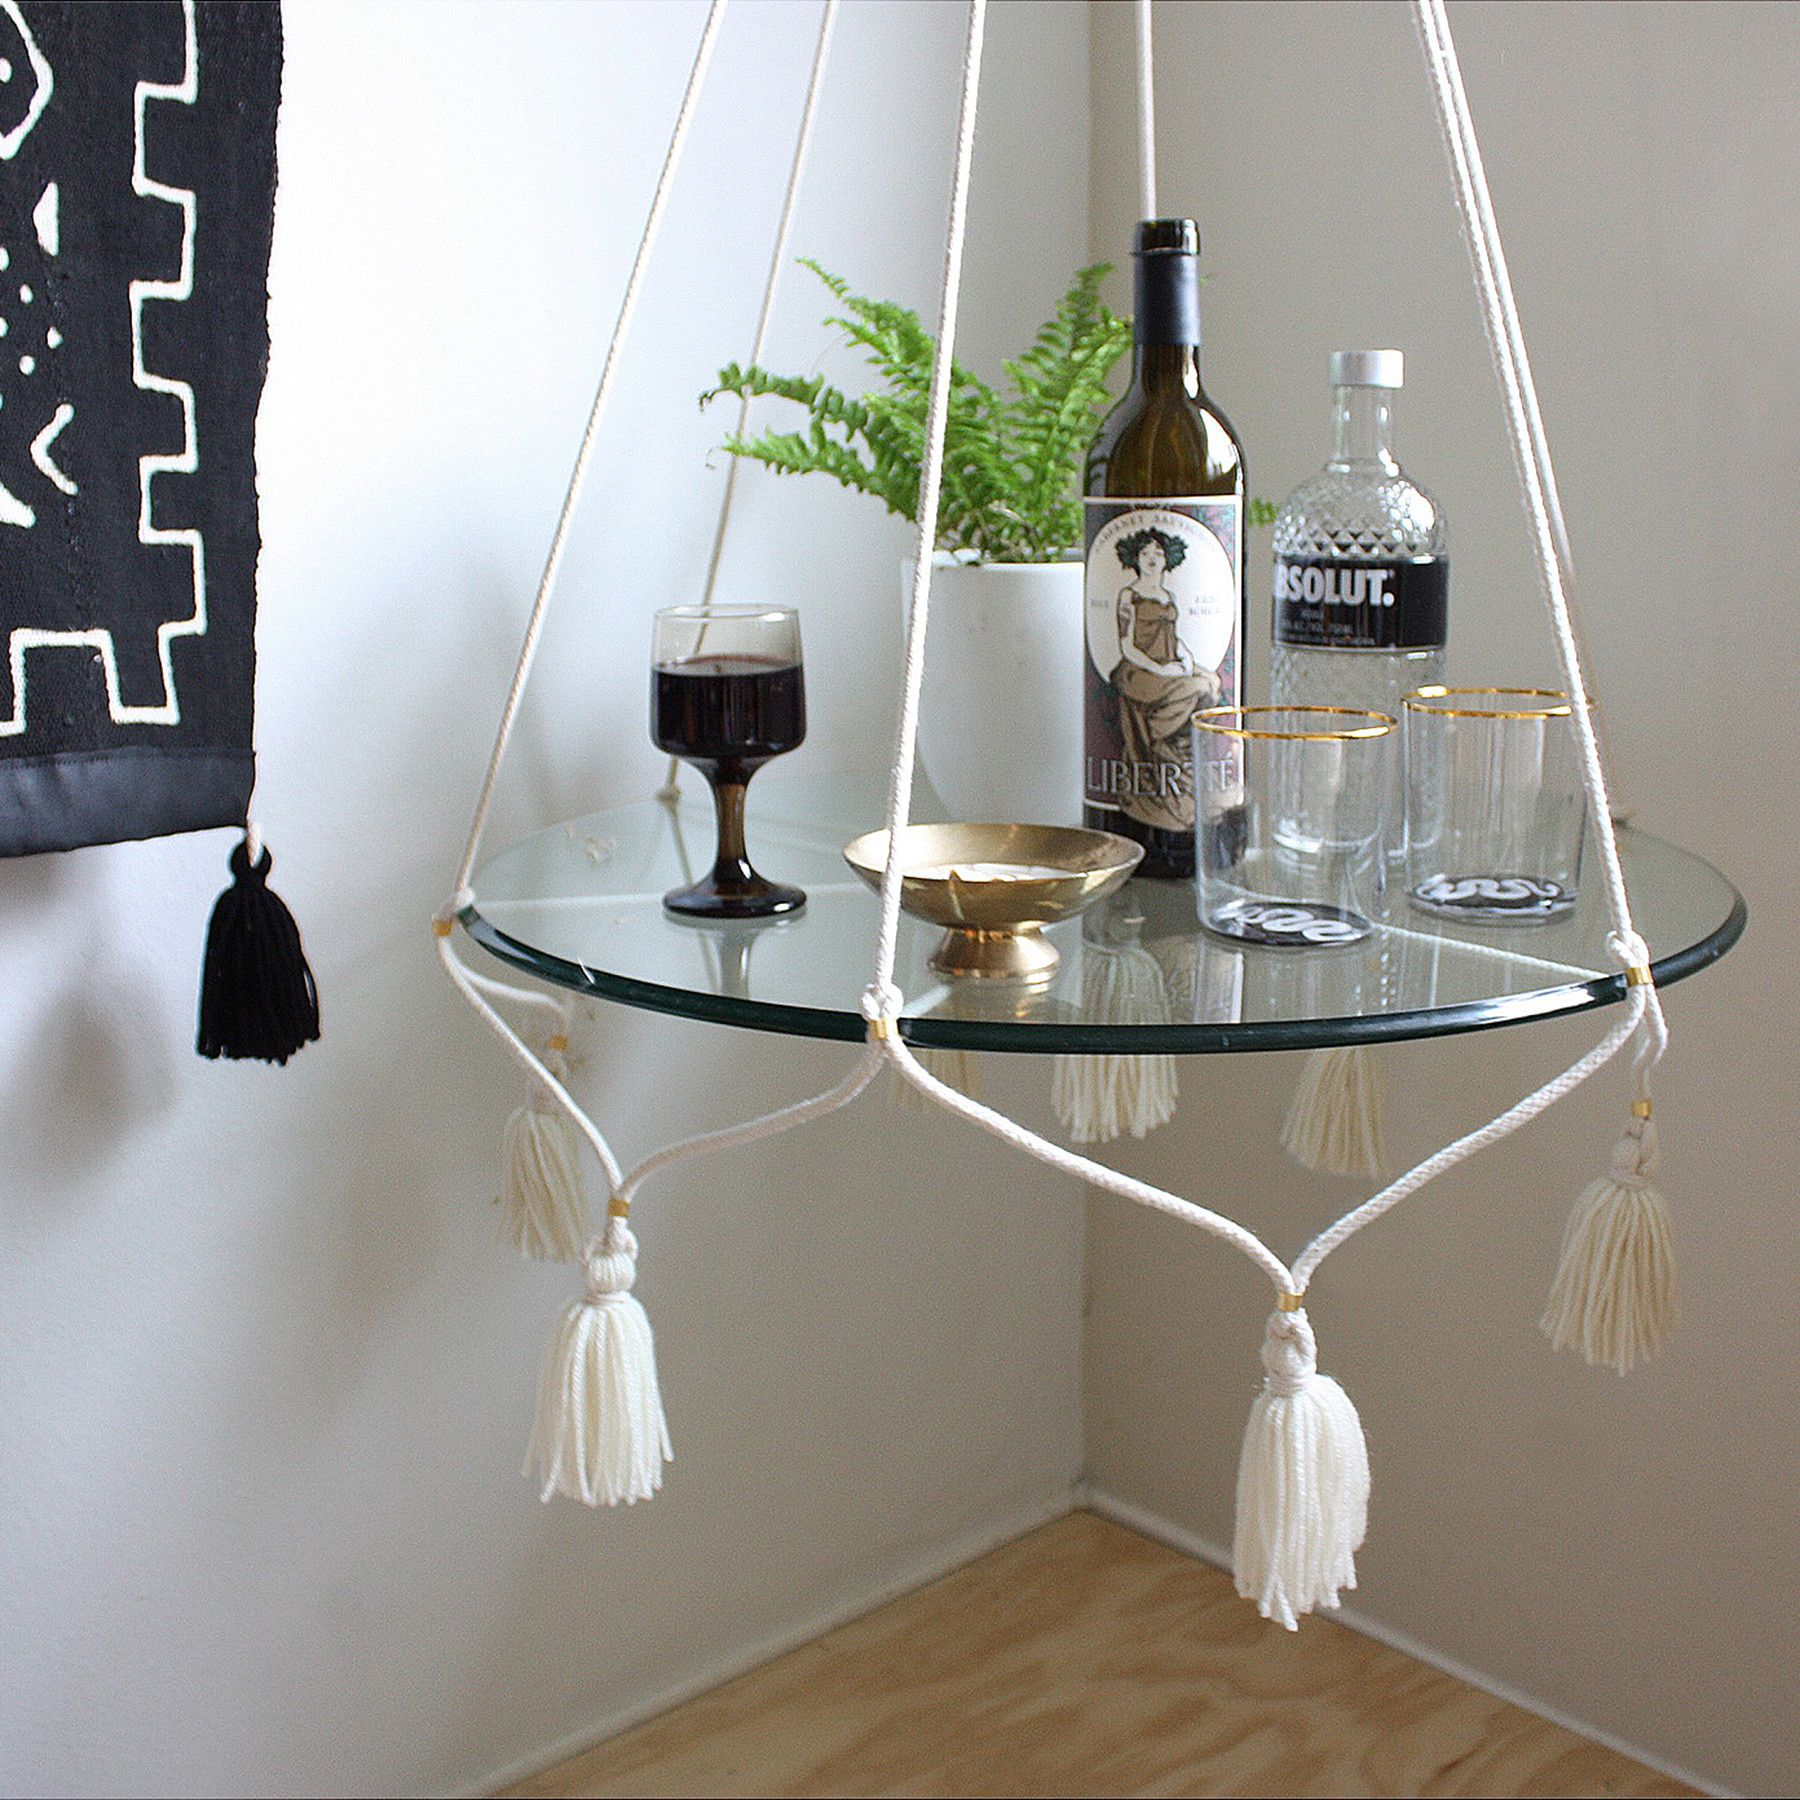 Suspended Shelves From Ceiling: Hanging Table/Plant Holder With Tassels